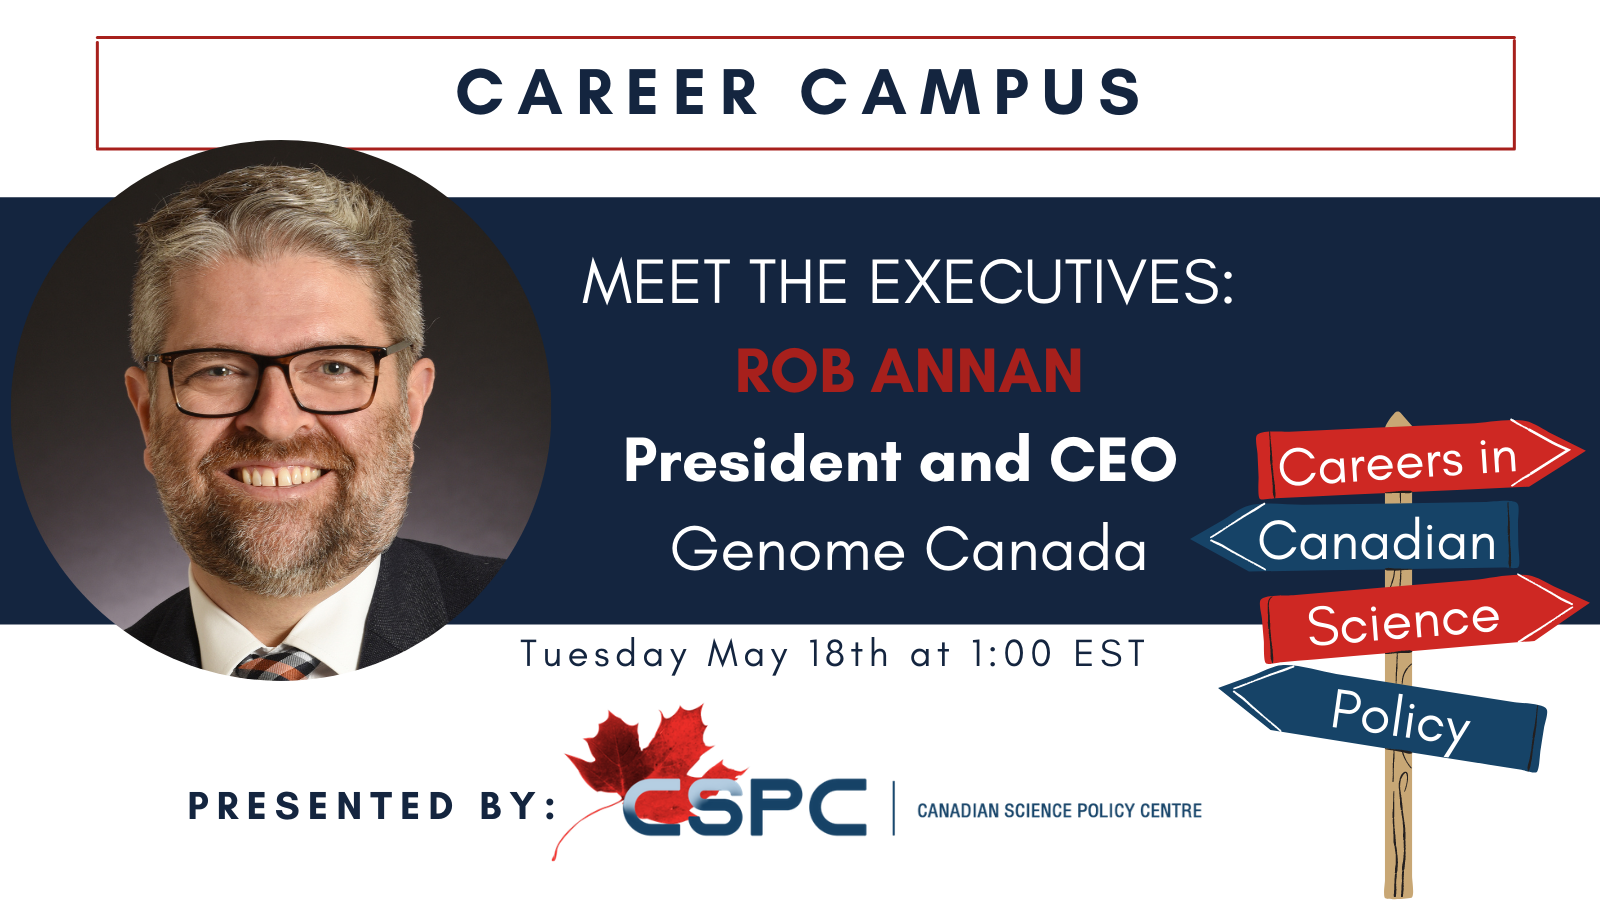 A banner with a headshot of a white man wearing glasses, with the text: career campus, meet the executives: ROb Annan president and CEO of Genome Canada, presented by CSPC